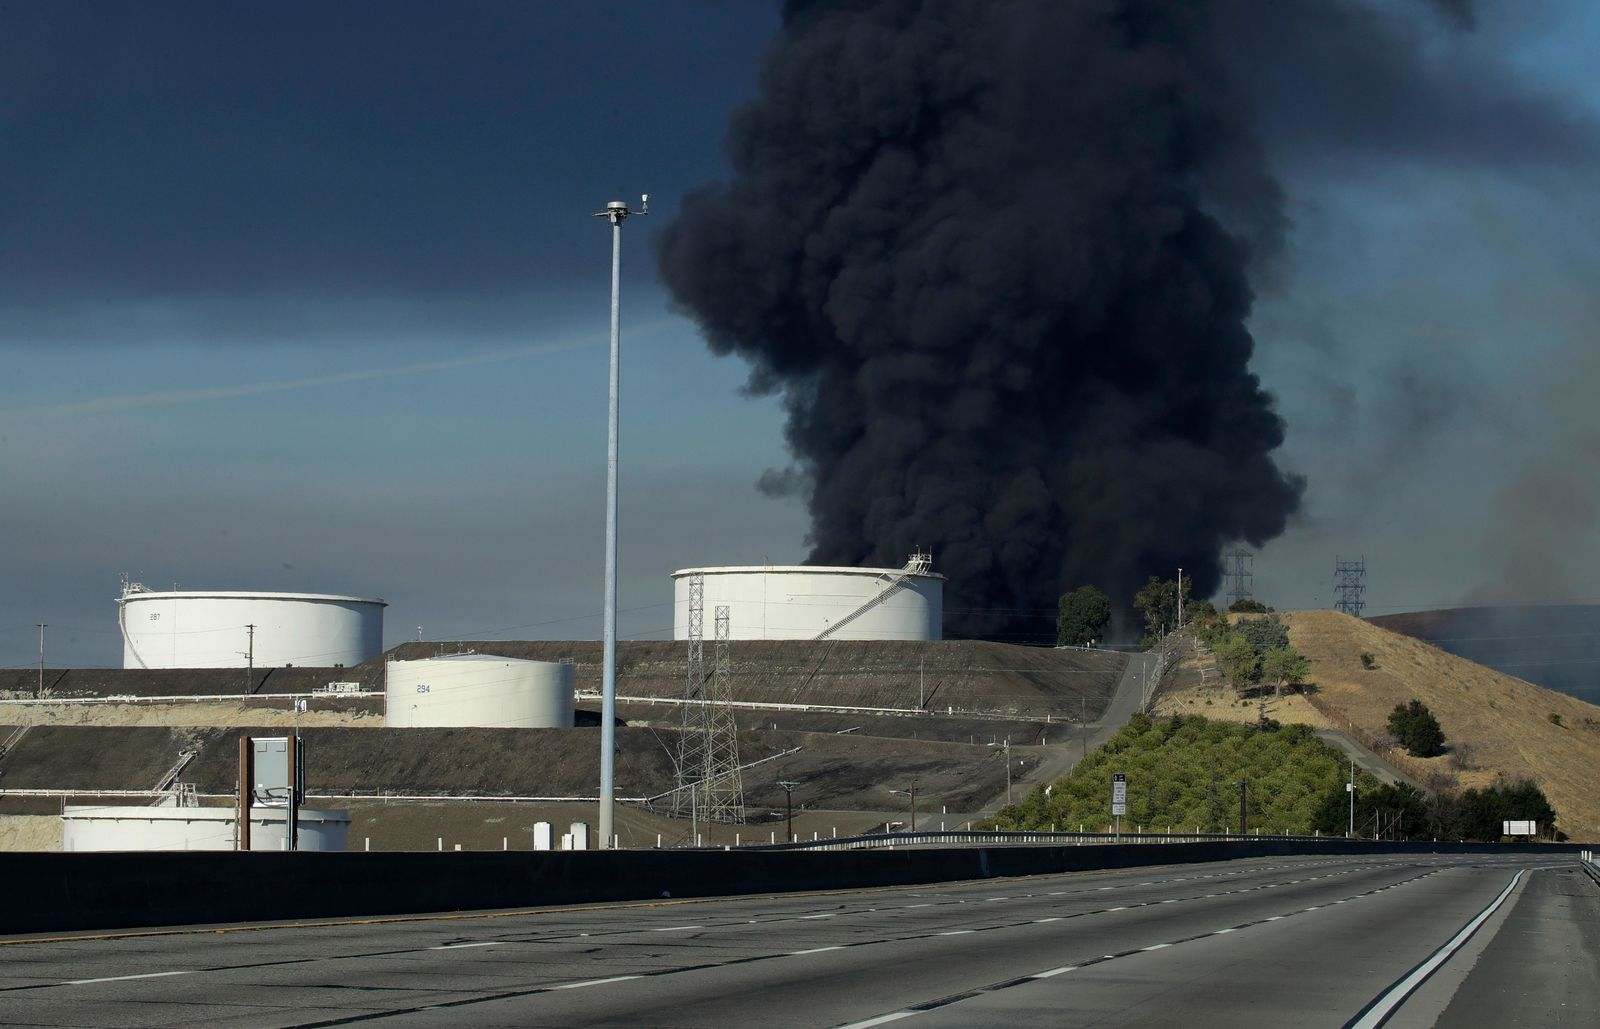 "Interstate 80 is closed as a fire at an oil storage facility burns Tuesday, Oct. 15, 2019, in Crockett, Calif. A fire burning at NuStar Energy LP facility prompted a hazardous materials emergency that led authorities to order the residents of two communities, including Rodeo, to stay inside with all windows and doors closed. ""This is a very dynamic, rapidly evolving situation,"" Capt. George Laing of the Contra Costa Fire Department said.  (AP Photo/Ben Margot)"